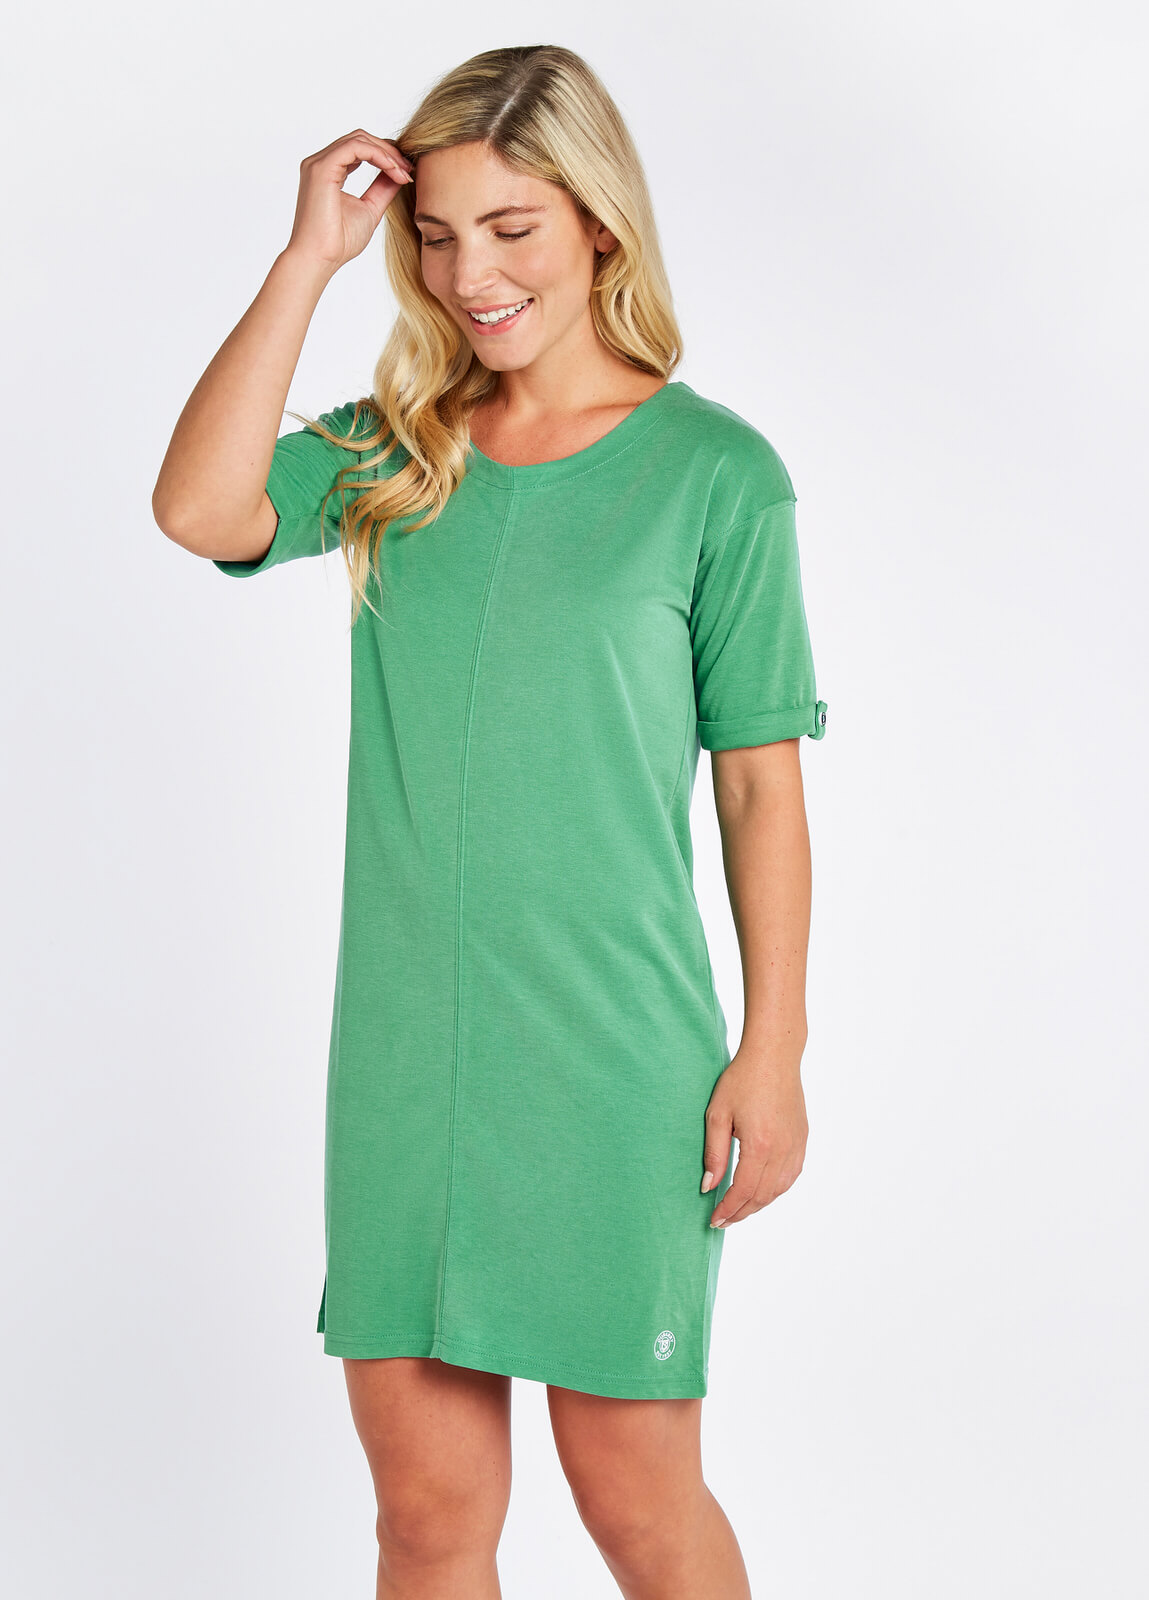 Coolbeg Tunic Dress - Kelly Green